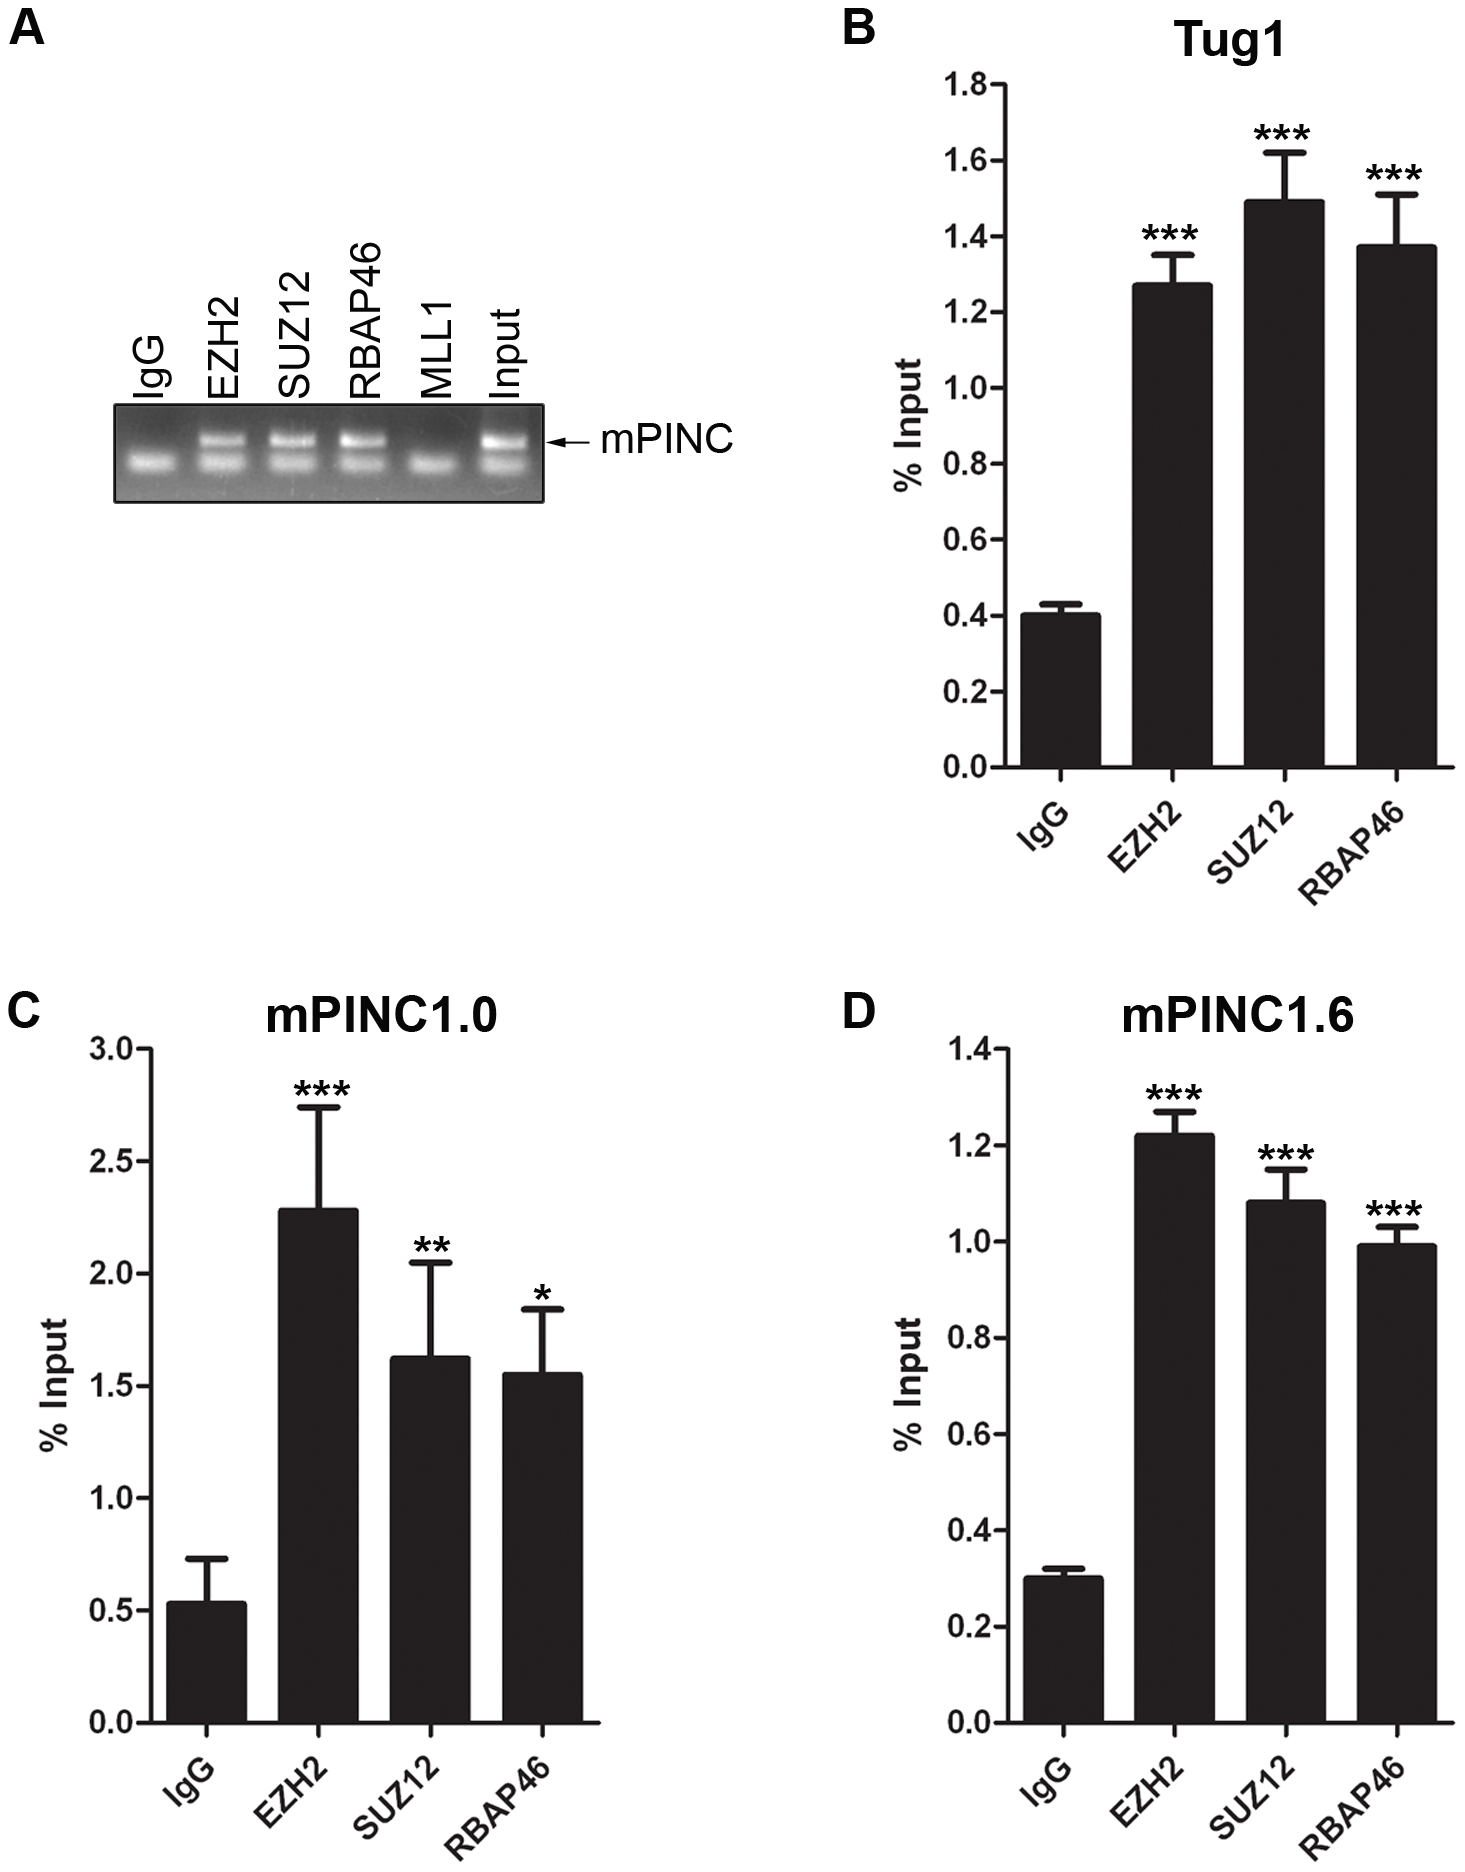 <i>mPINC</i> interacts with PRC2 in HC11 cells.